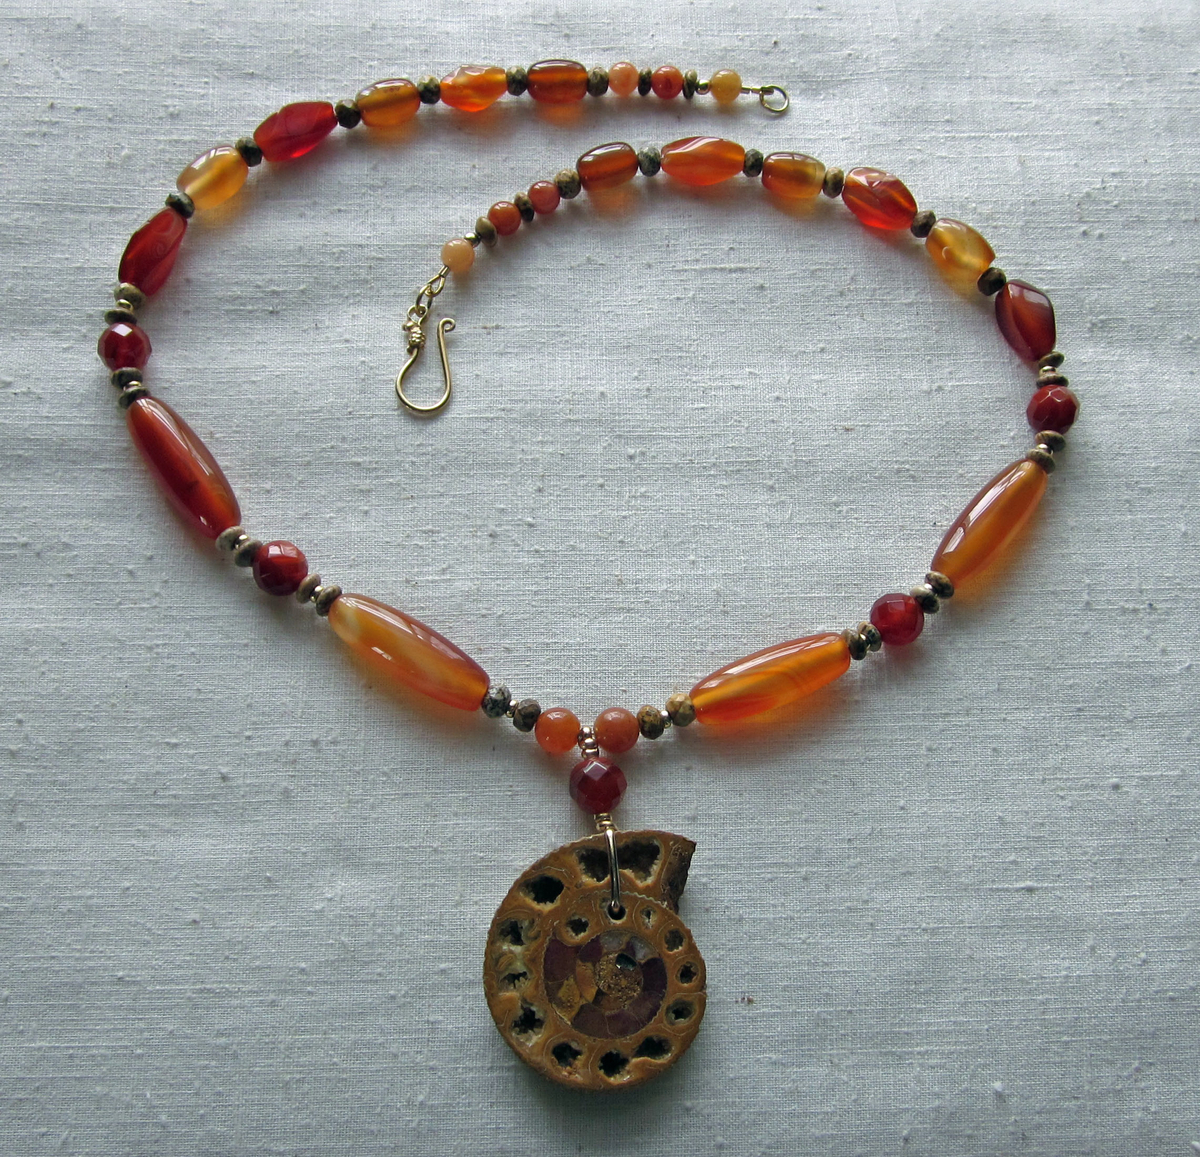 Rustic ammonite necklace (large view)